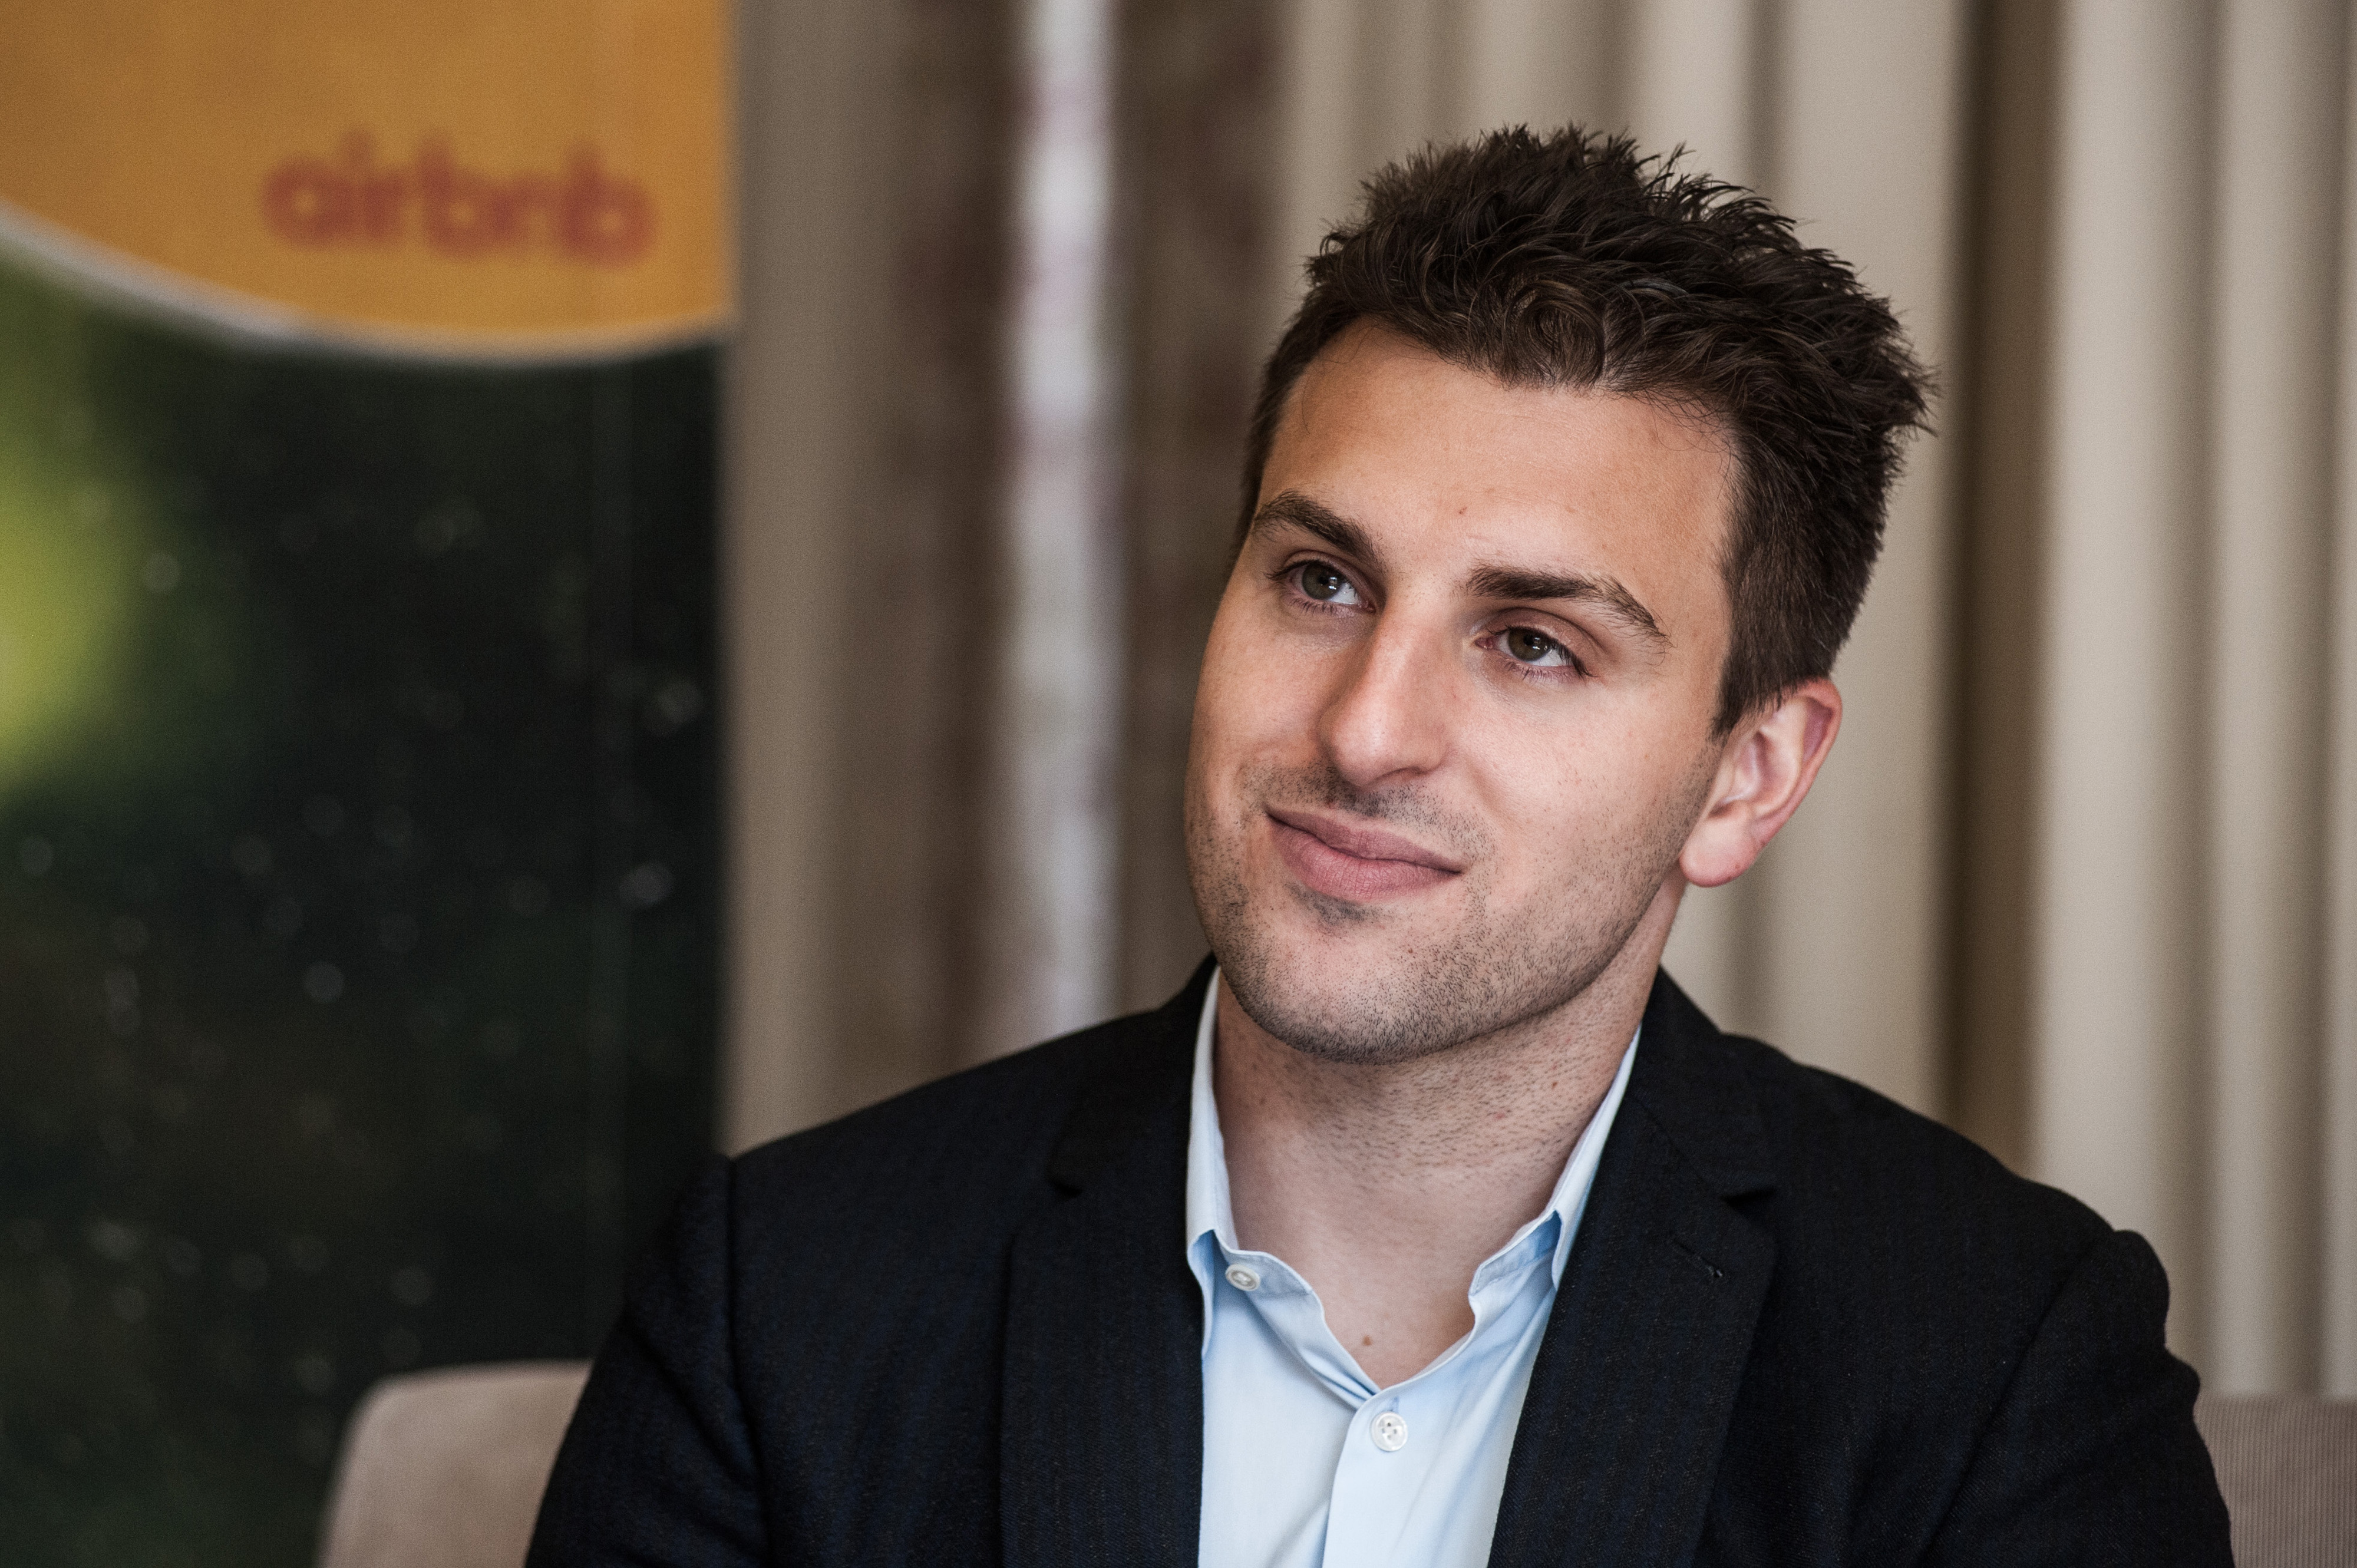 Airbnb Inc. Chief Executive Officer Brian Chesky As Company Plans Africa Expansion